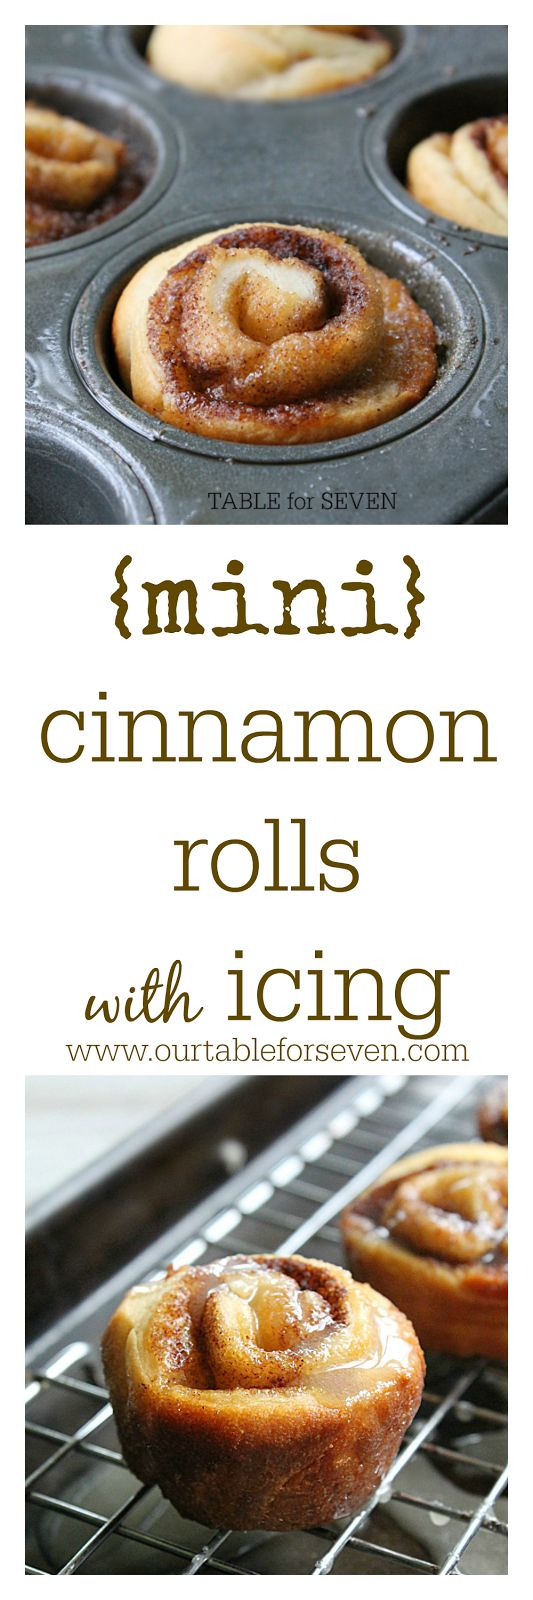 Mini Cinnamon Rolls with Icing - TABLE for SEVEN